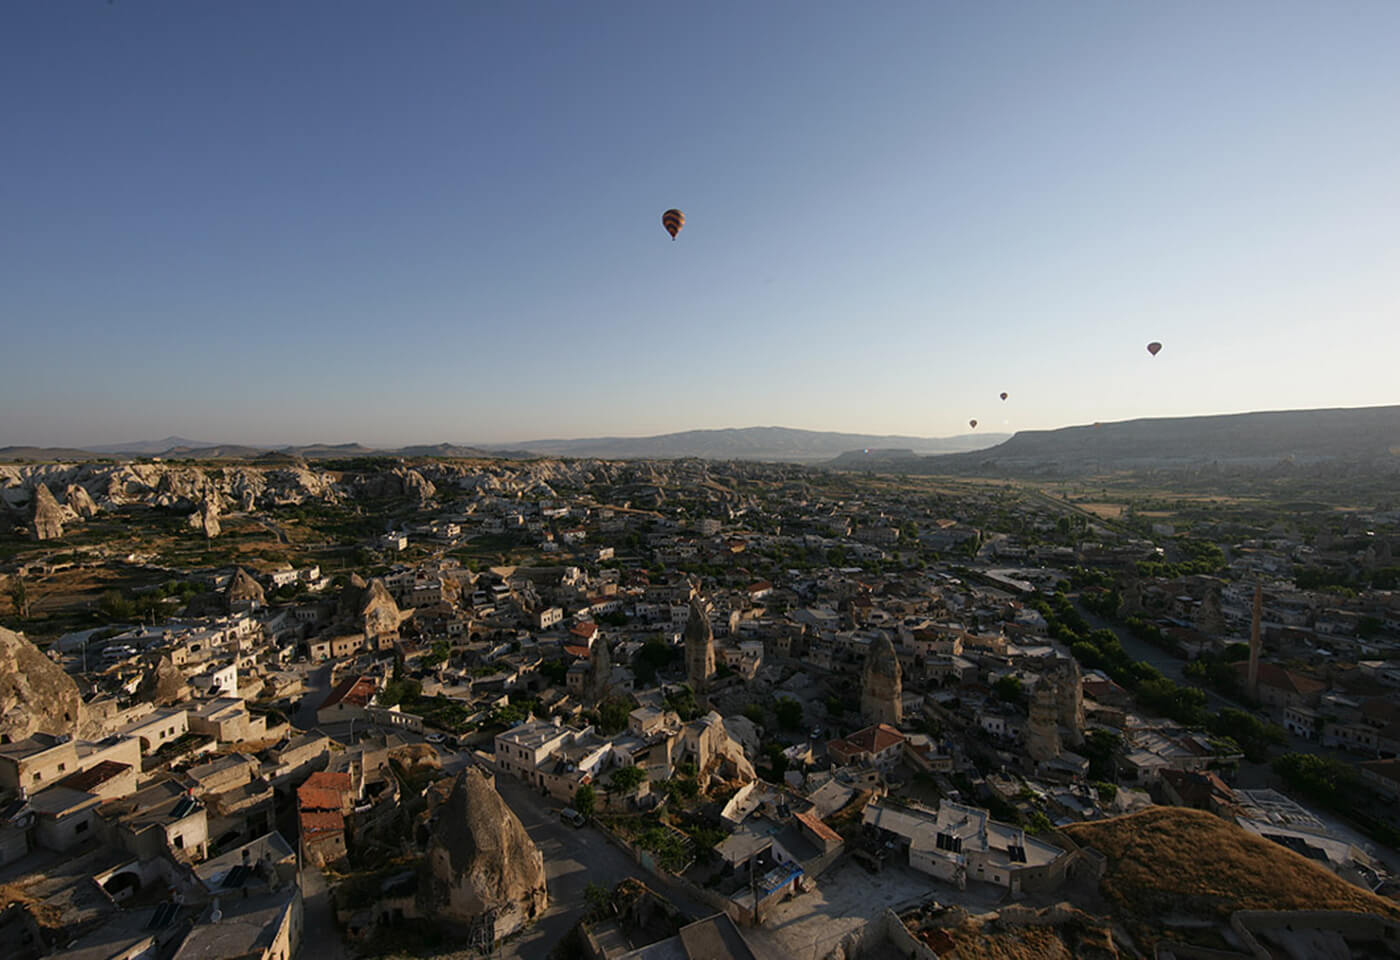 View of hot air balloons over town